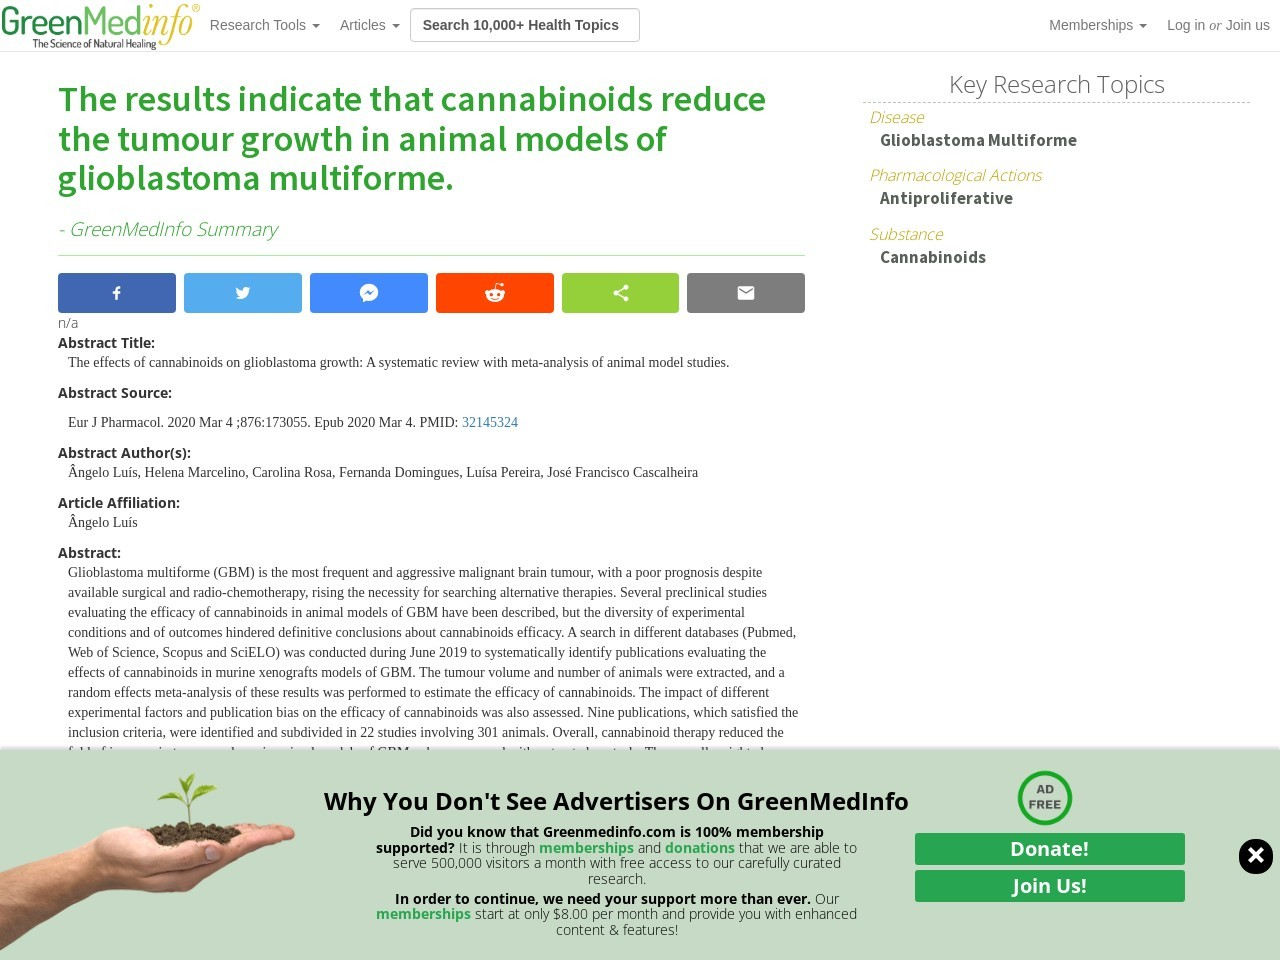 The results indicate that cannabinoids reduce the tumour growth in animal models of glioblastoma multiforme.